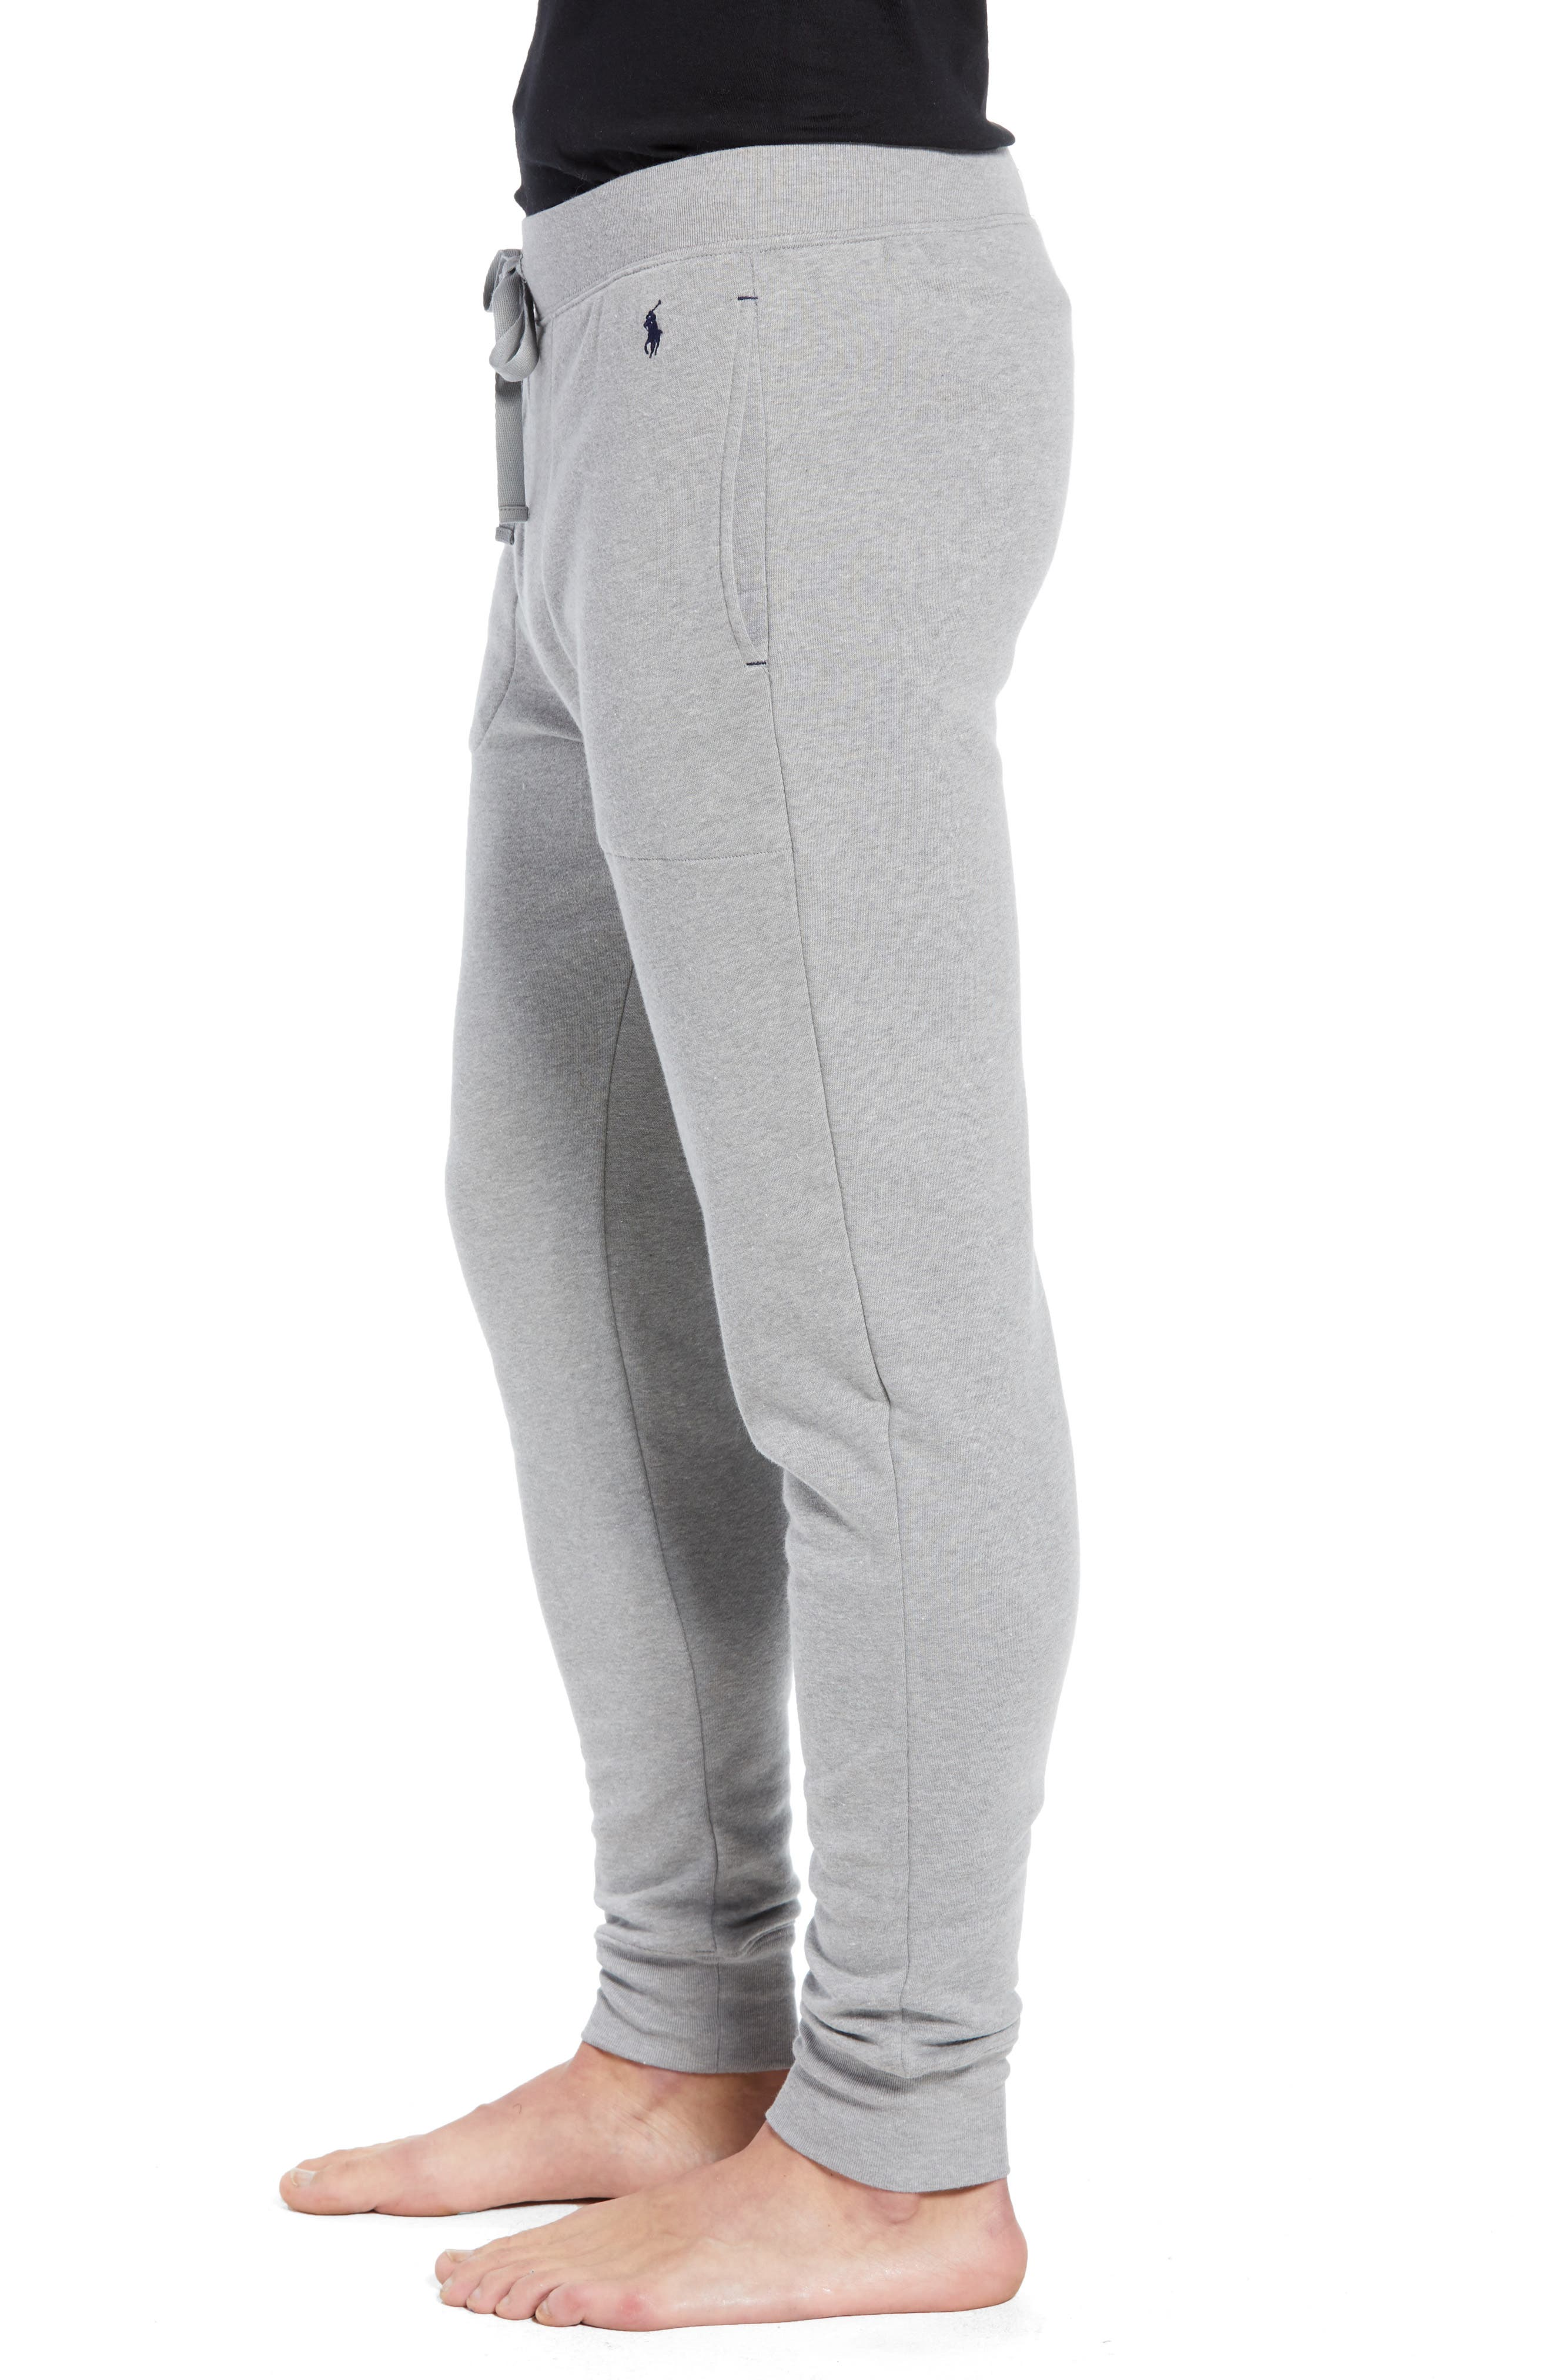 Brushed Jersey Cotton Blend Jogger Pants,                             Alternate thumbnail 3, color,                             ANDOVER HEATHER GREY